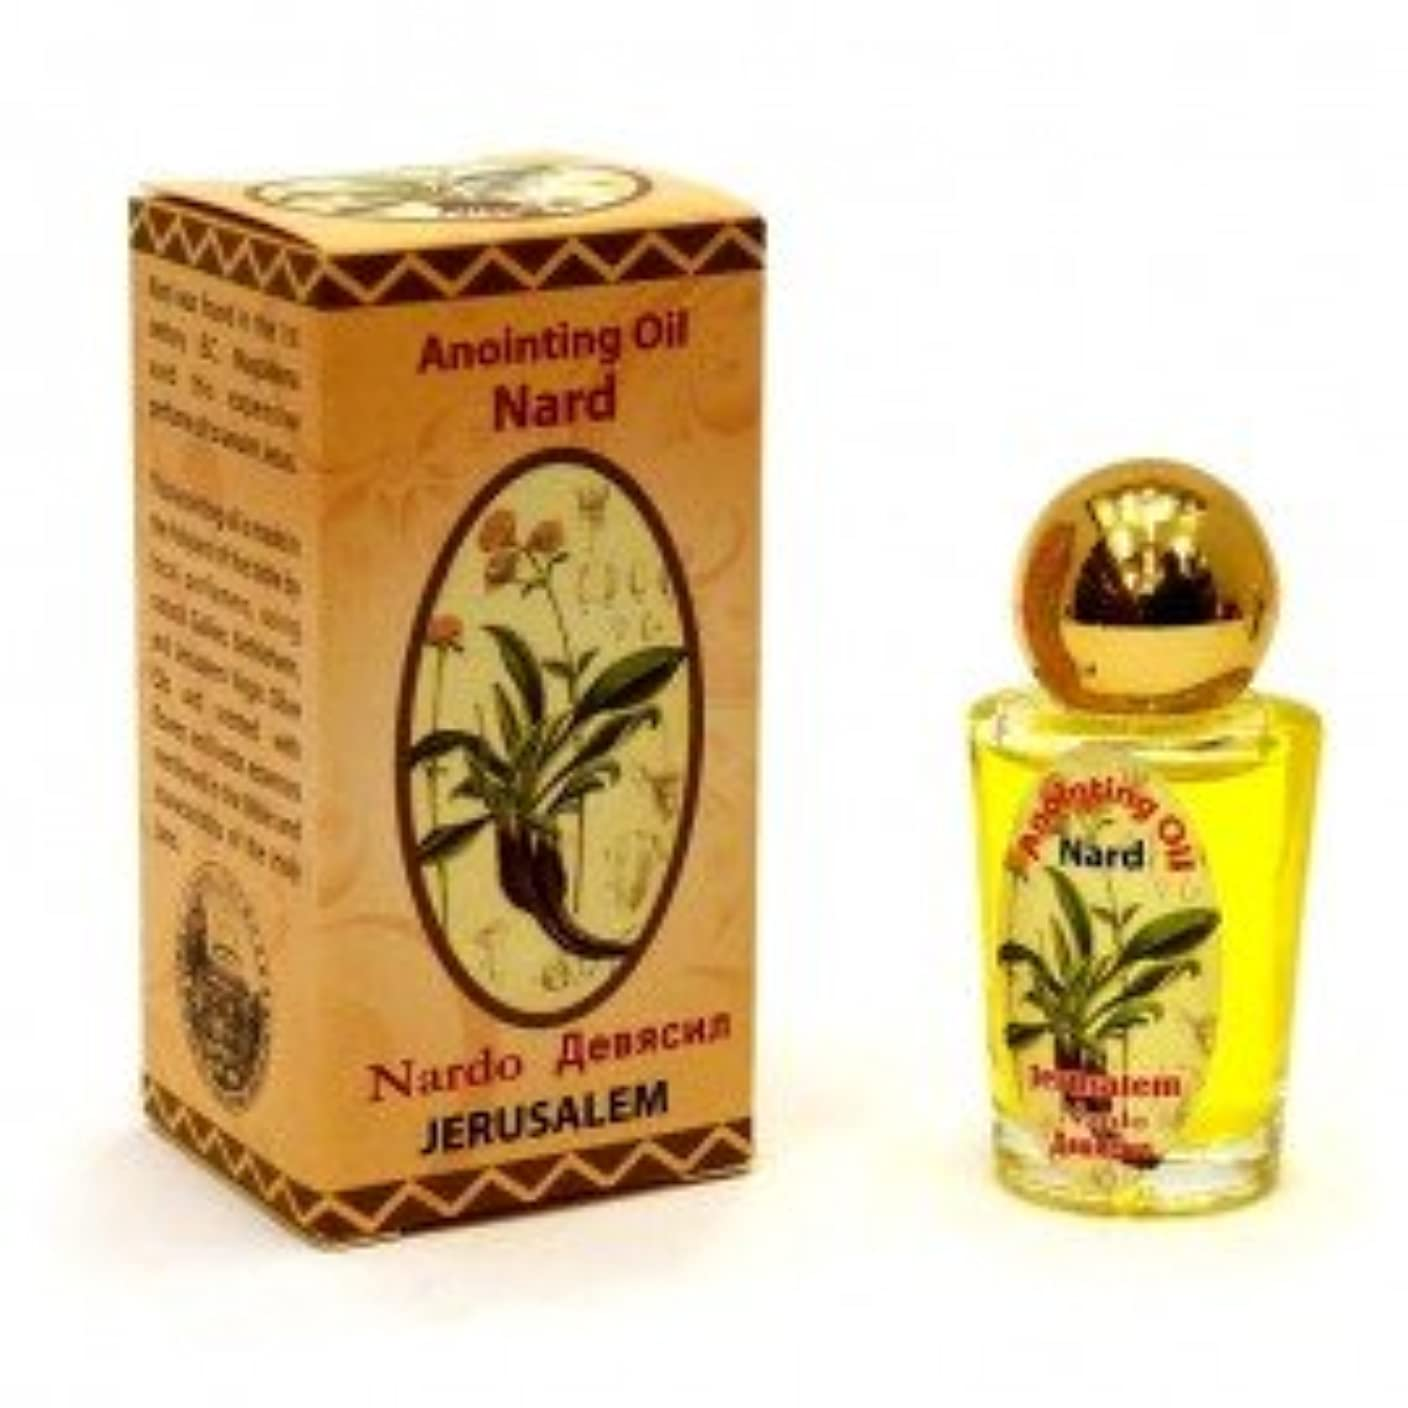 自分自身橋脚漏れHoly Land Blessed Anointingオイル30 ml Biblical Fragrance Jerusalem byベツレヘムギフトTM